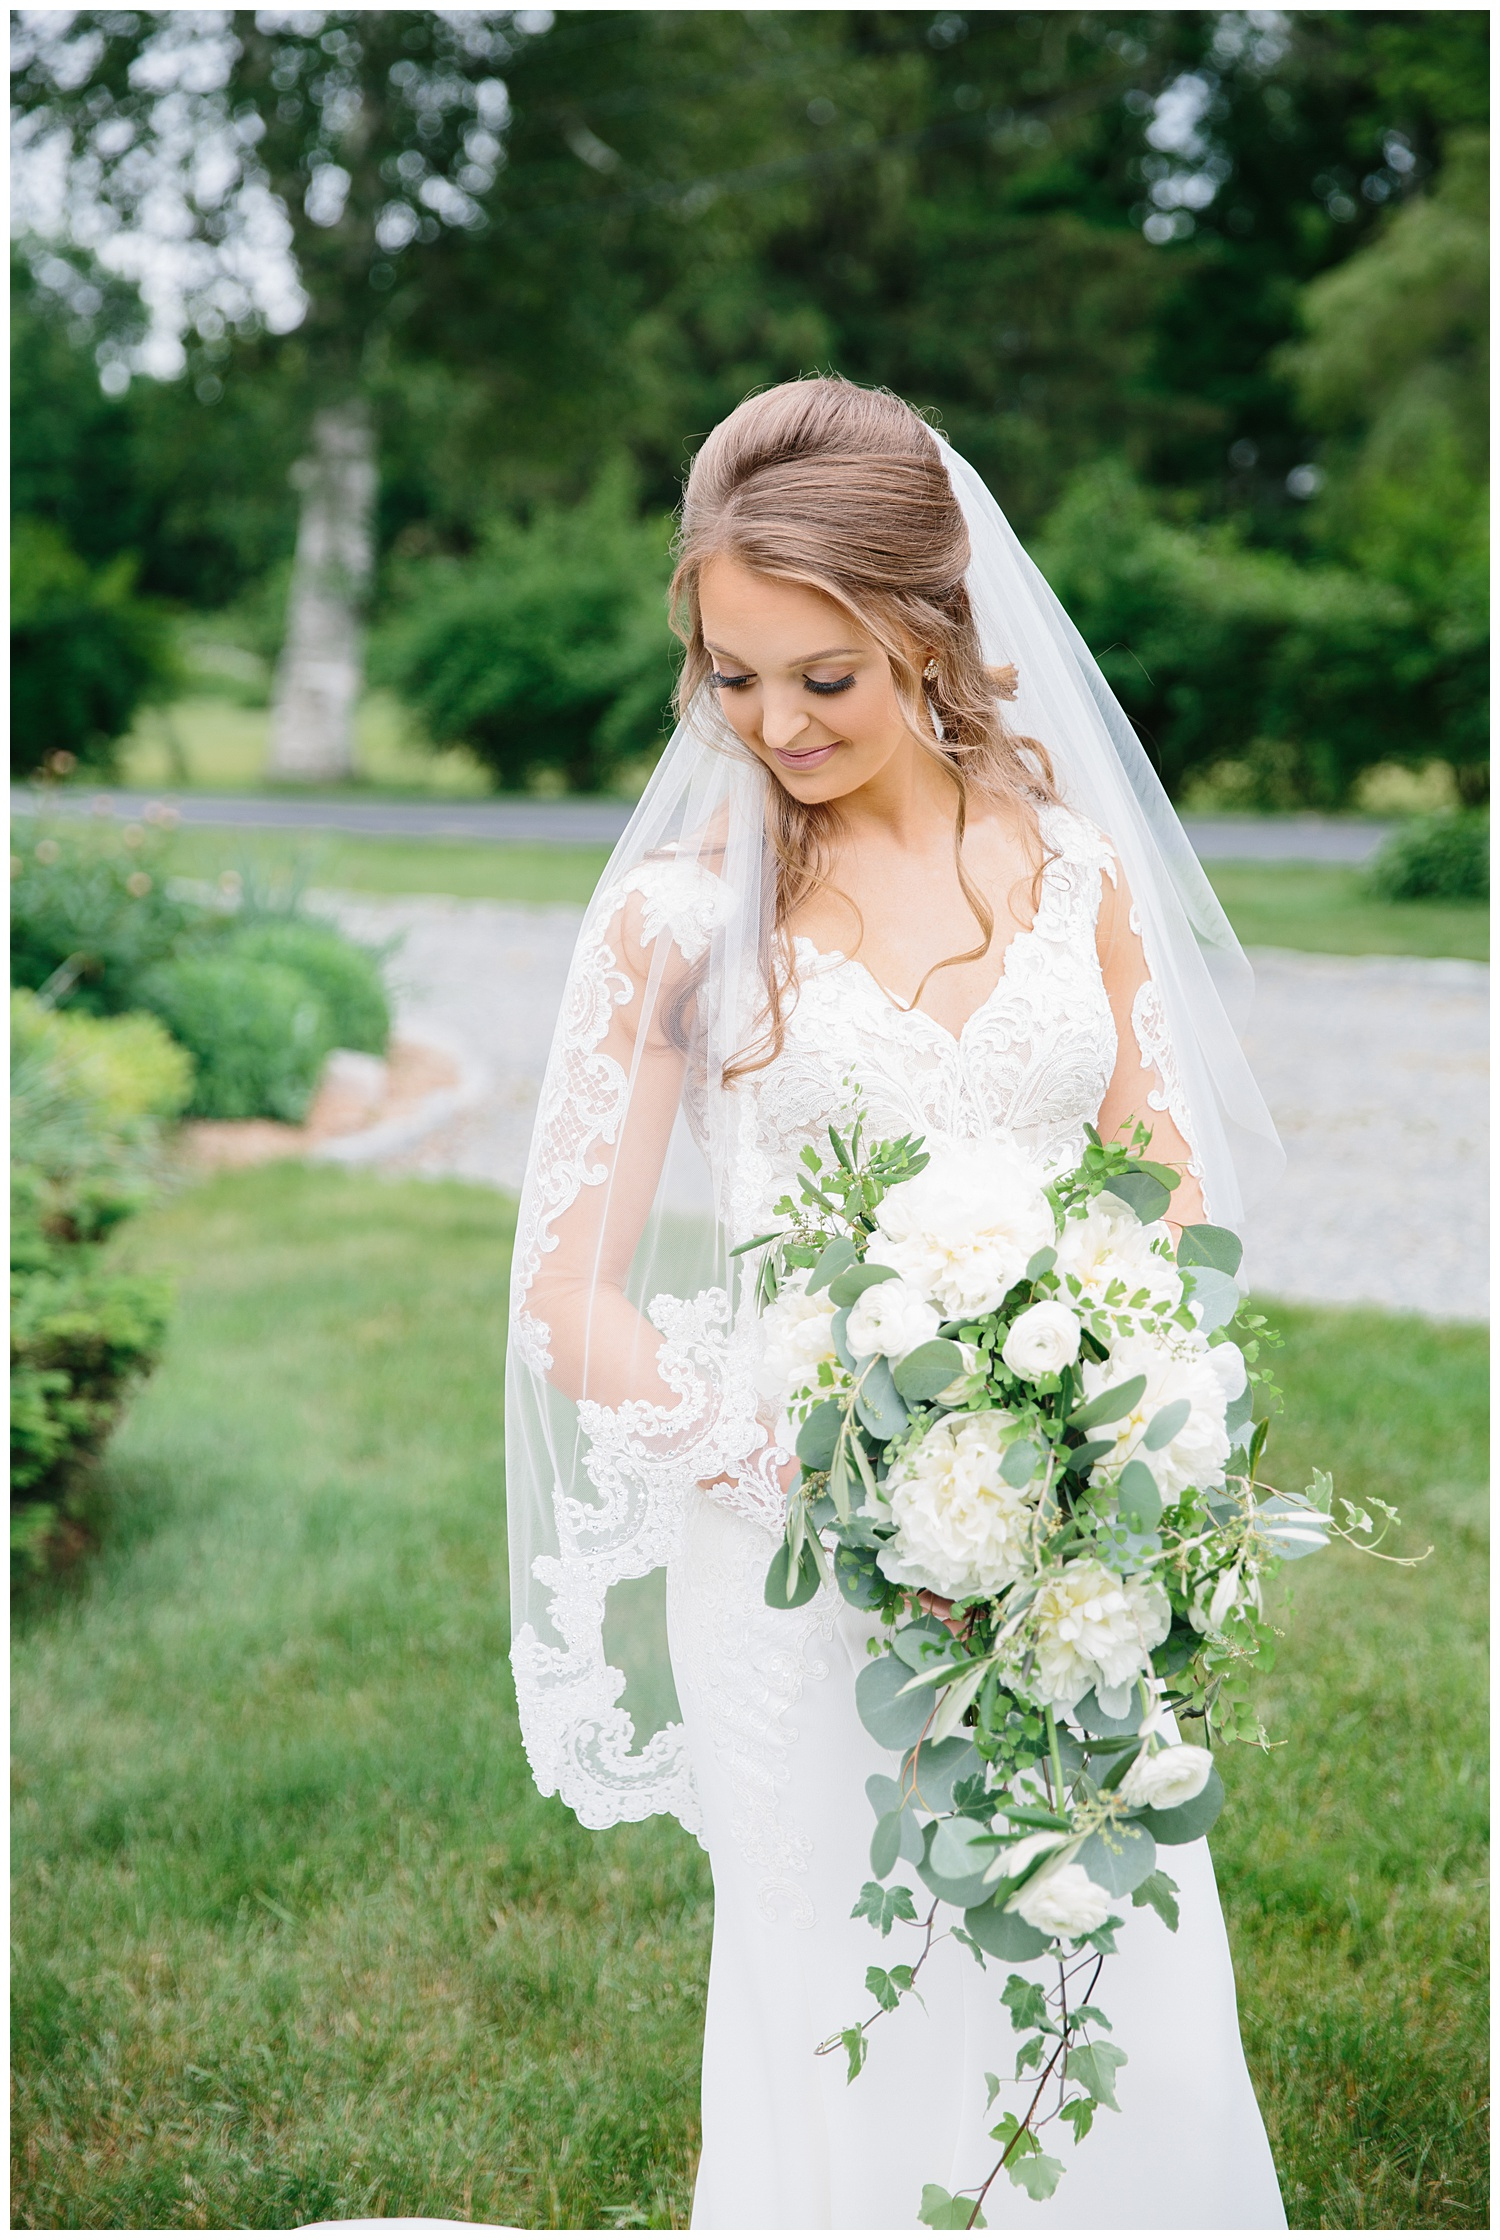 Tyler + Brynn + Botanical Gardens + Roger Williams + Rhode Island + Wedding_0031.jpg